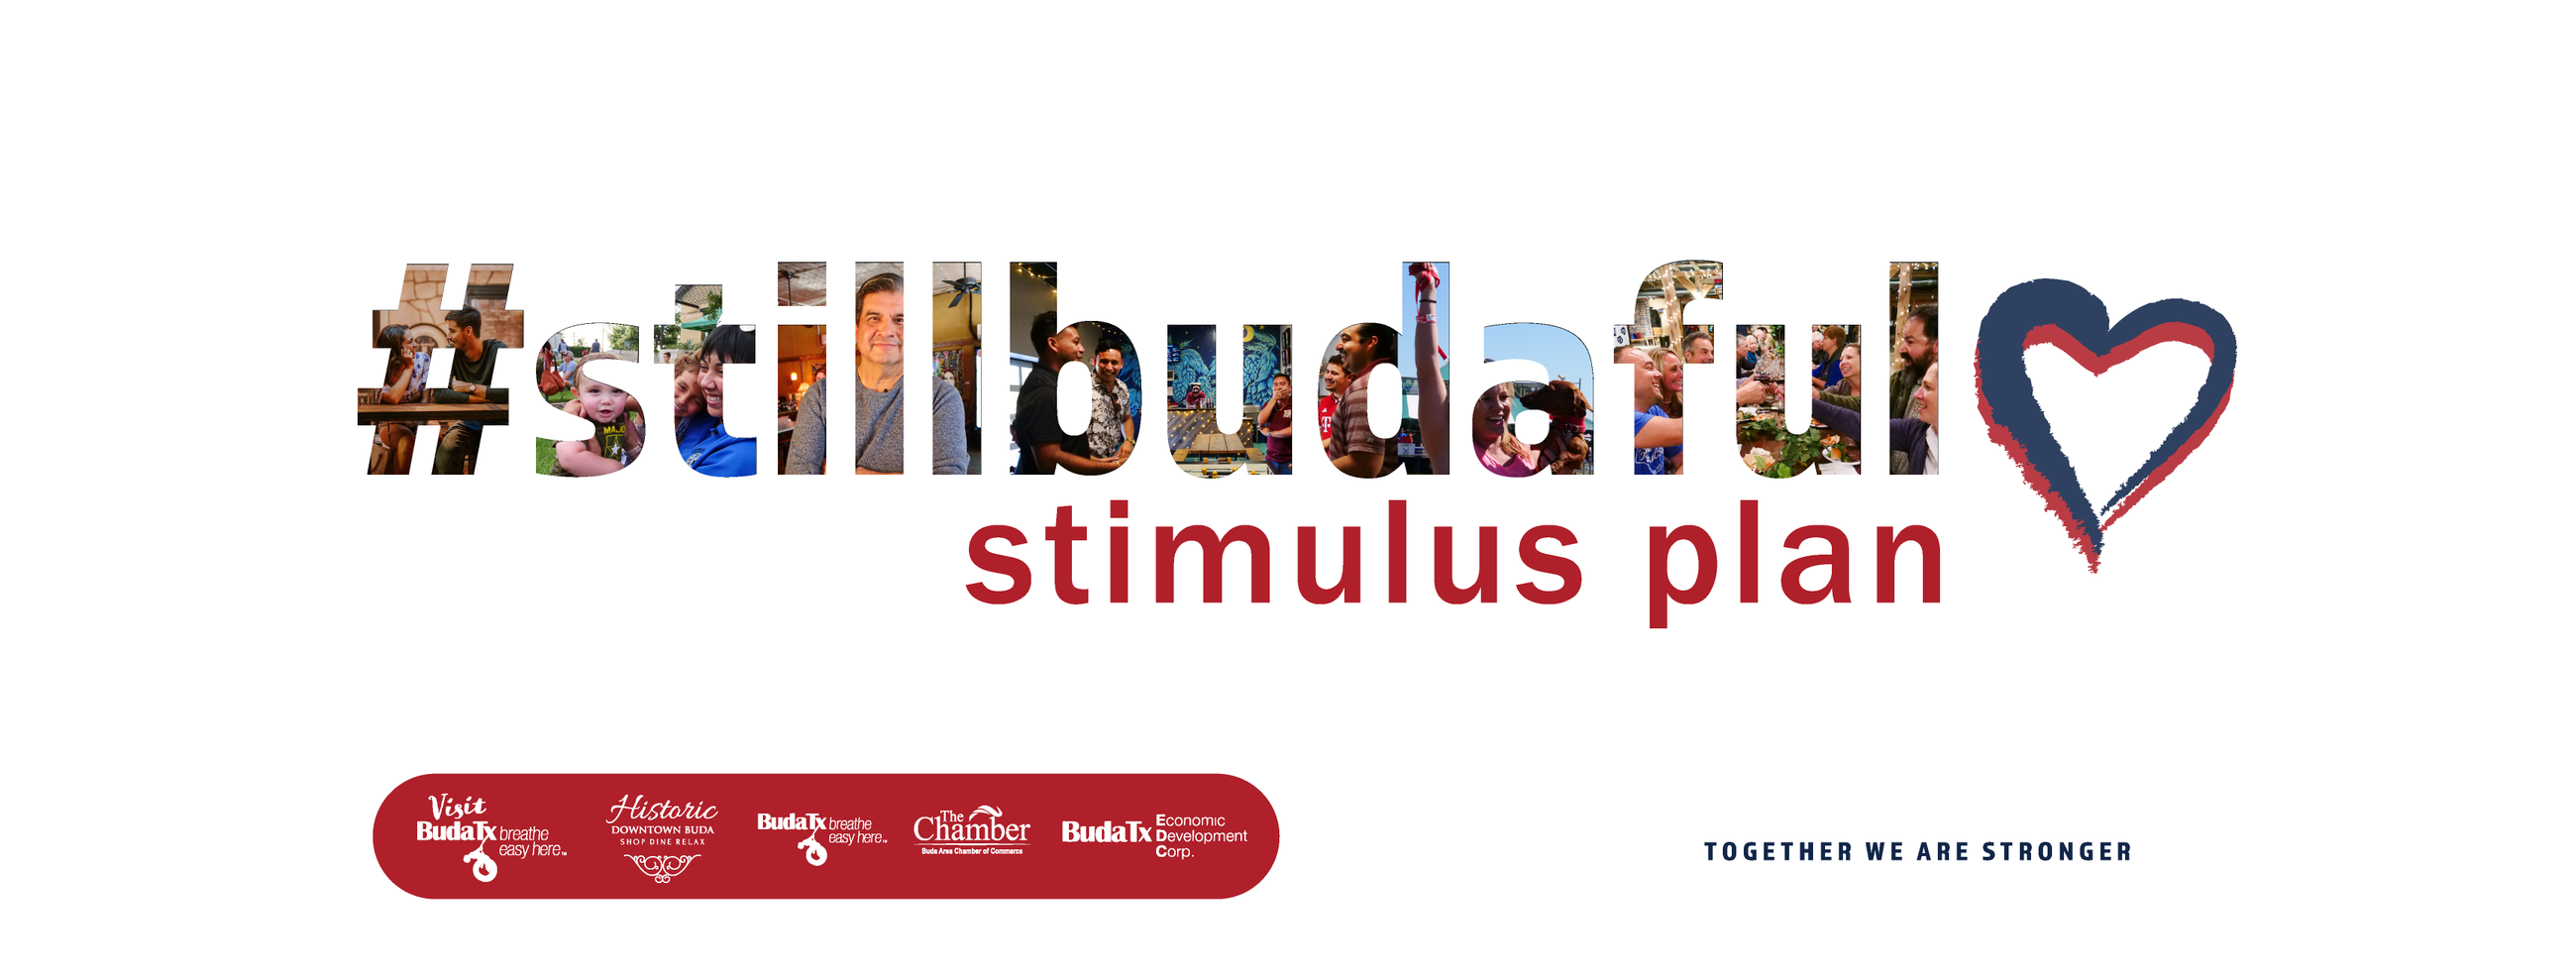 Still Budaful Stimulus Plan